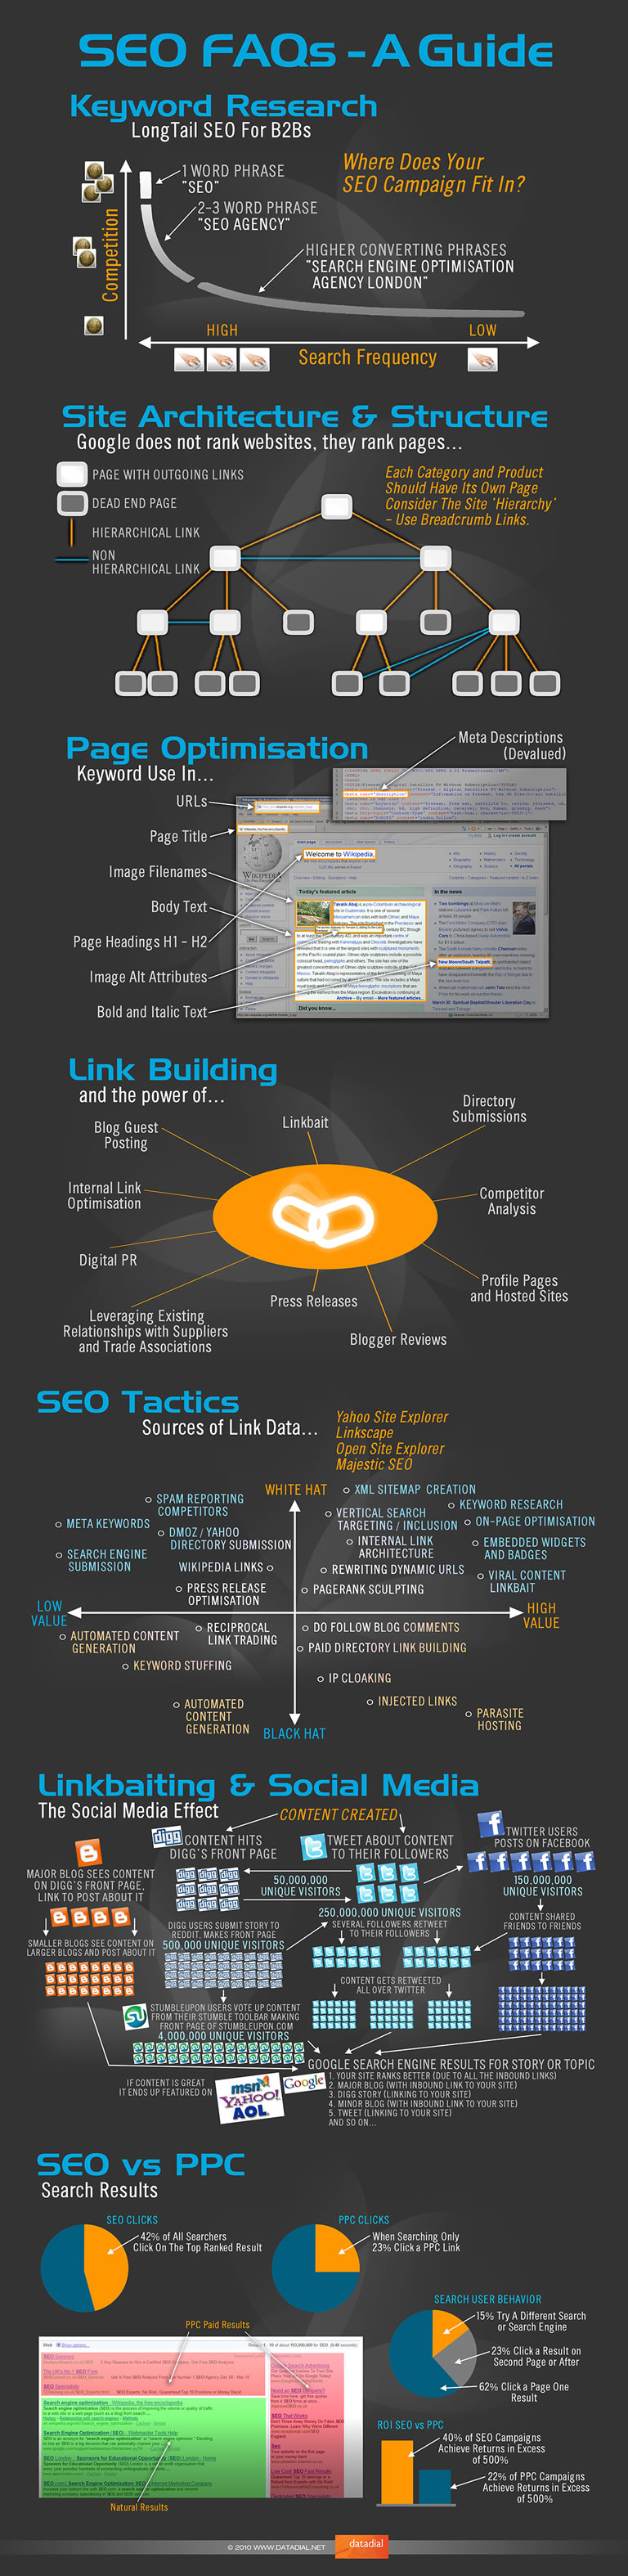 Datadial SEO Infographic